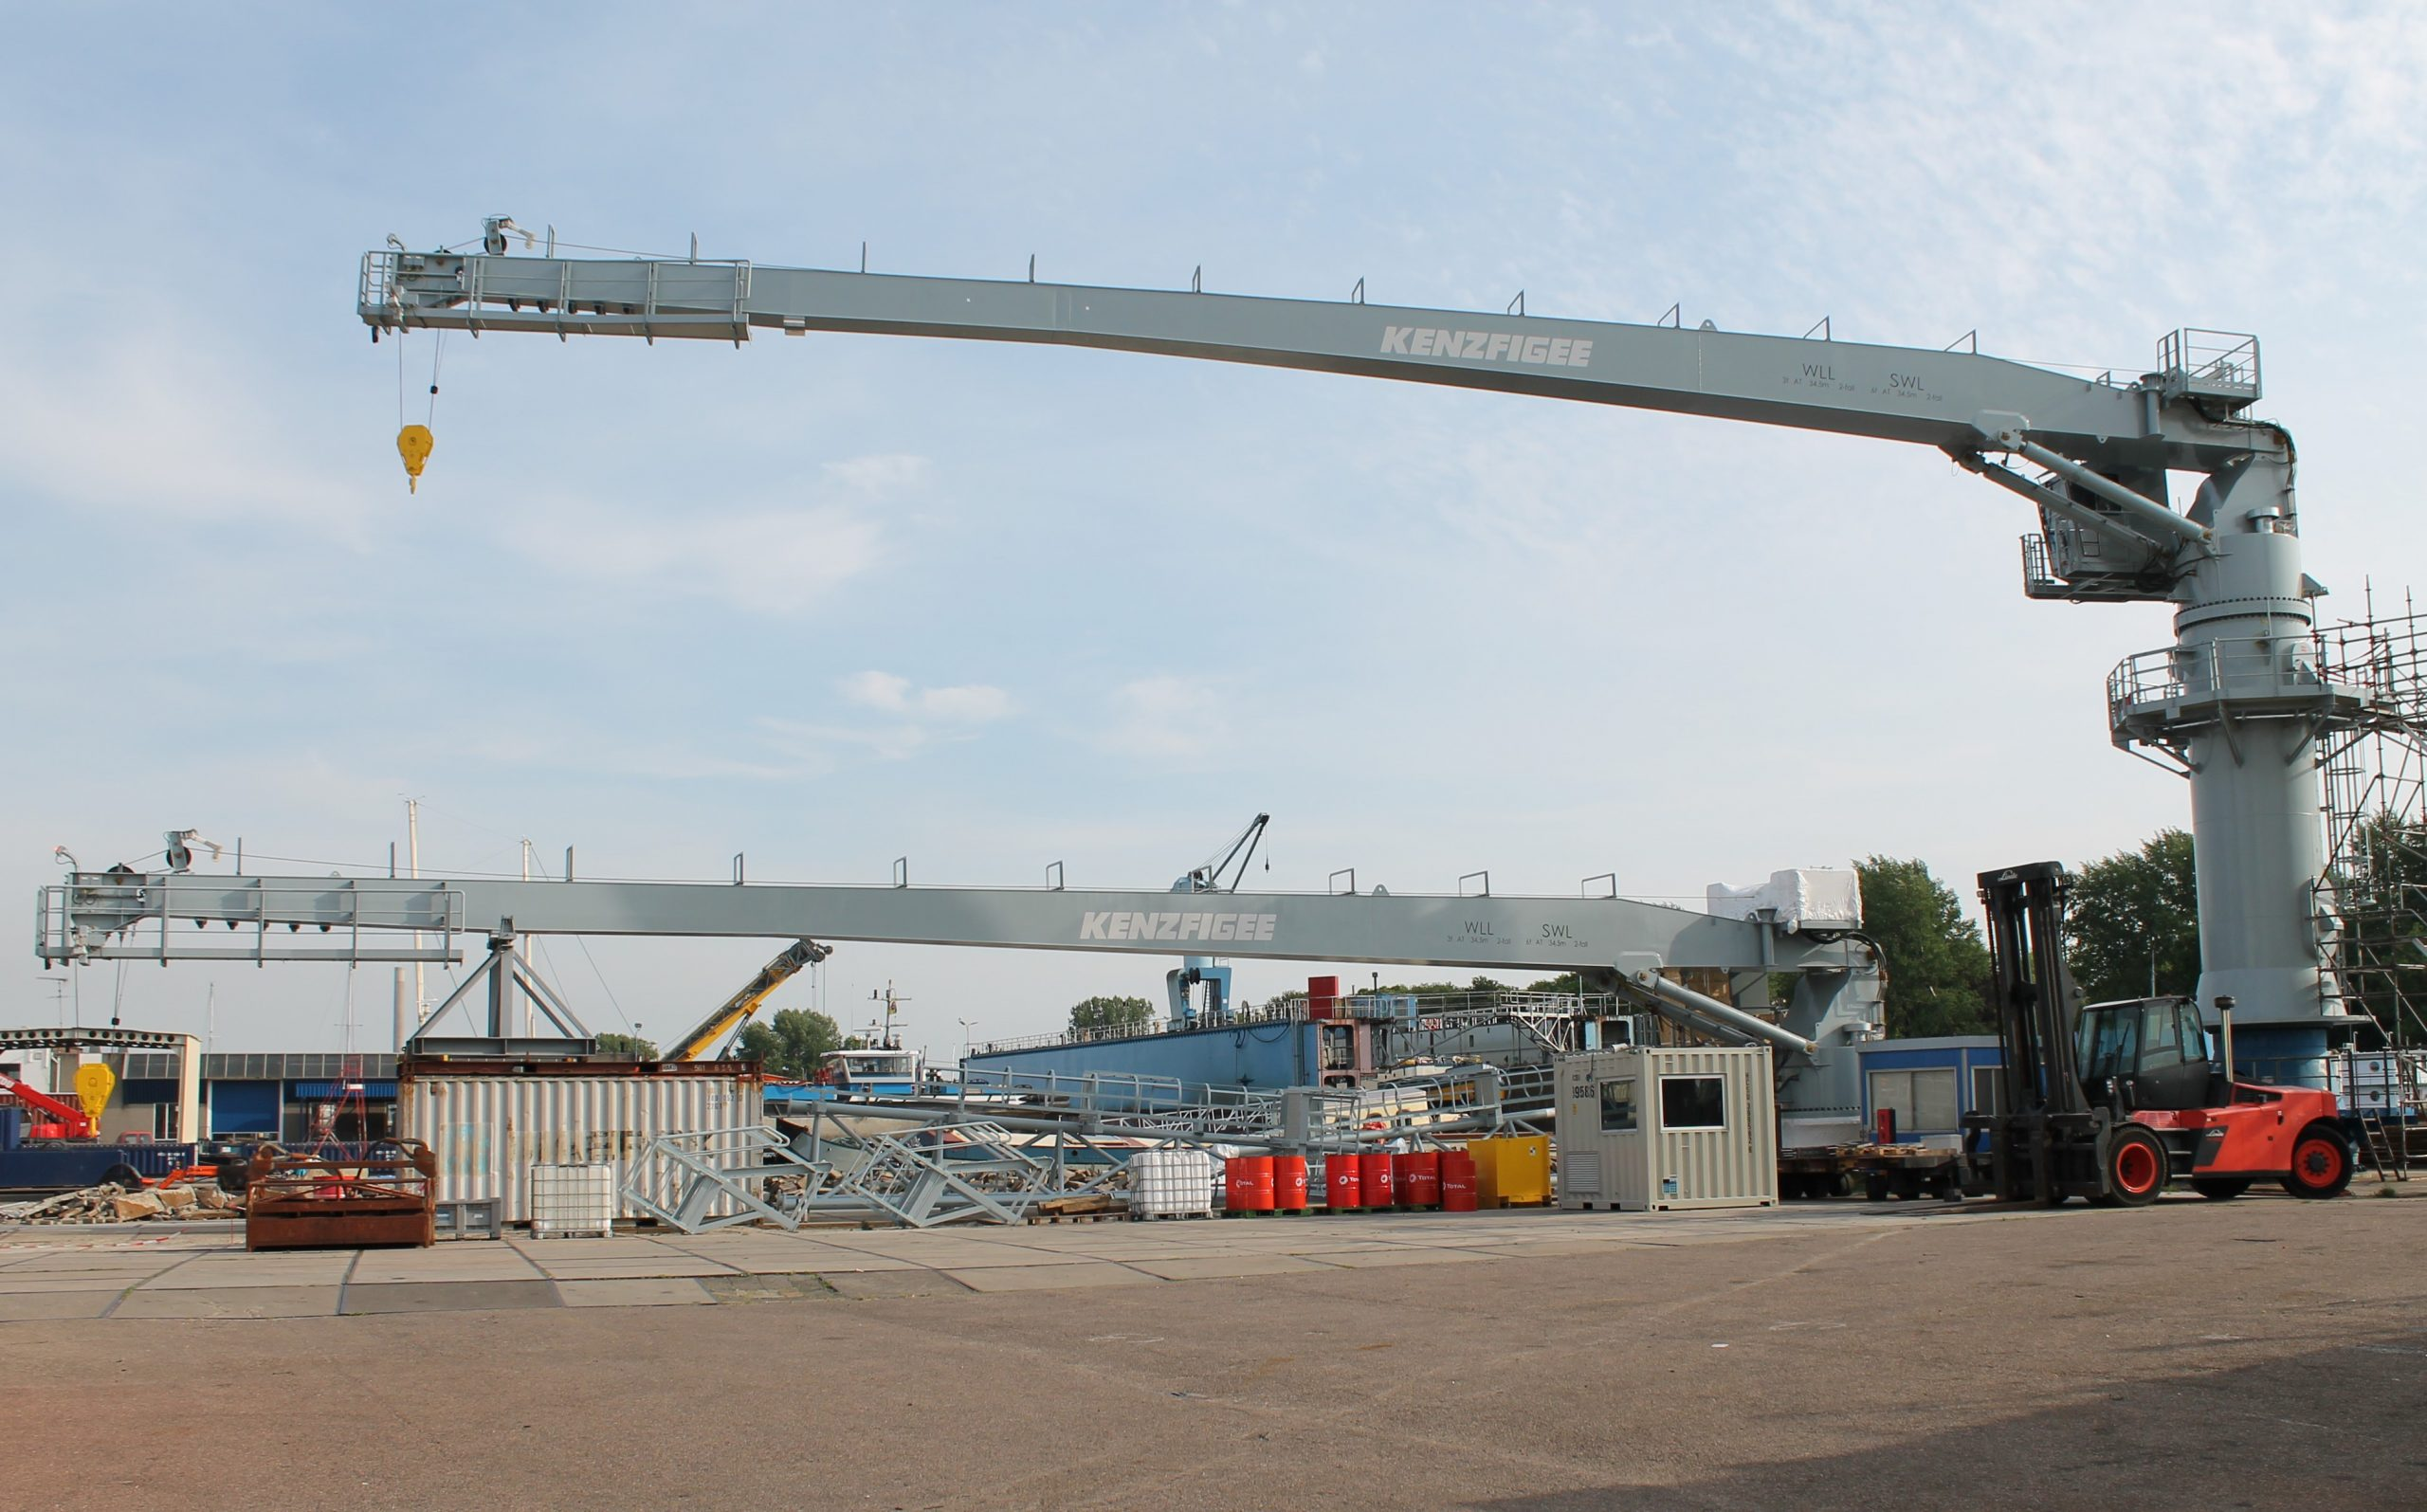 KenzFigee to supply Ammunition cranes to DIO in UK